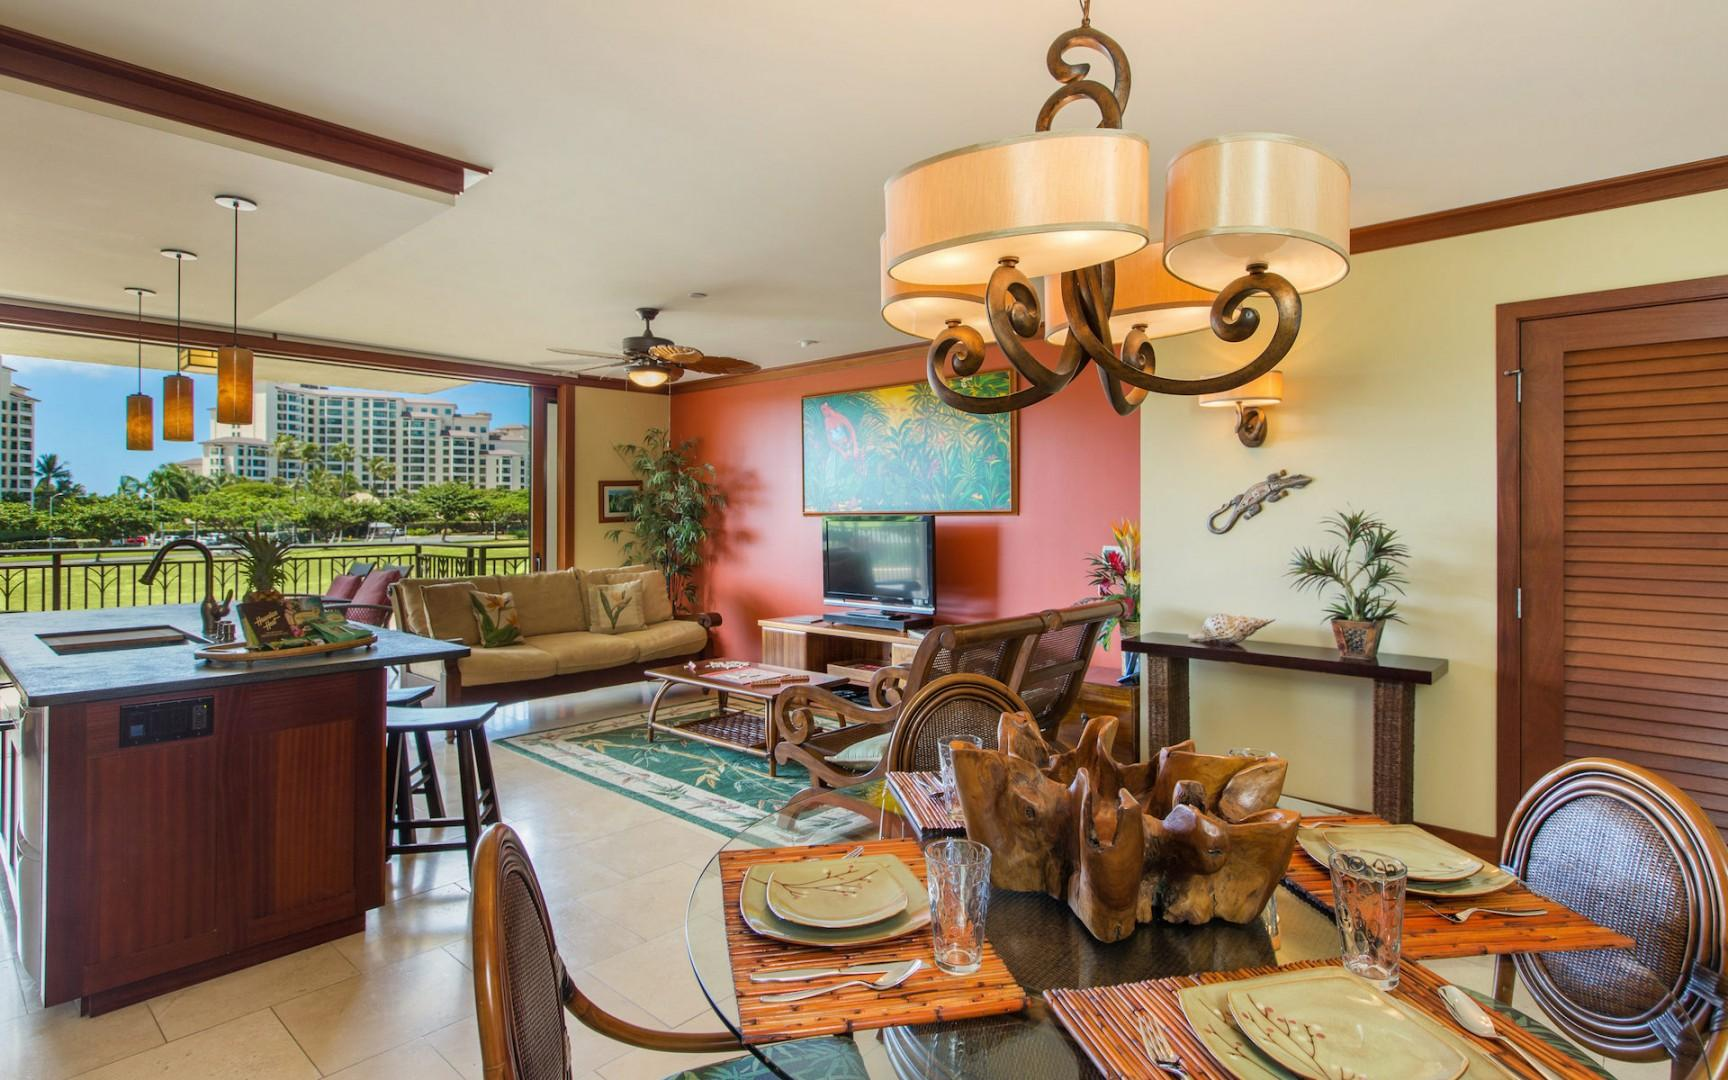 Open kitchen, living and dining area seamlessly connects with the large covered lanai. Pocket lanai doors disappear into the walls beautifully blending indoor and outdoor living.